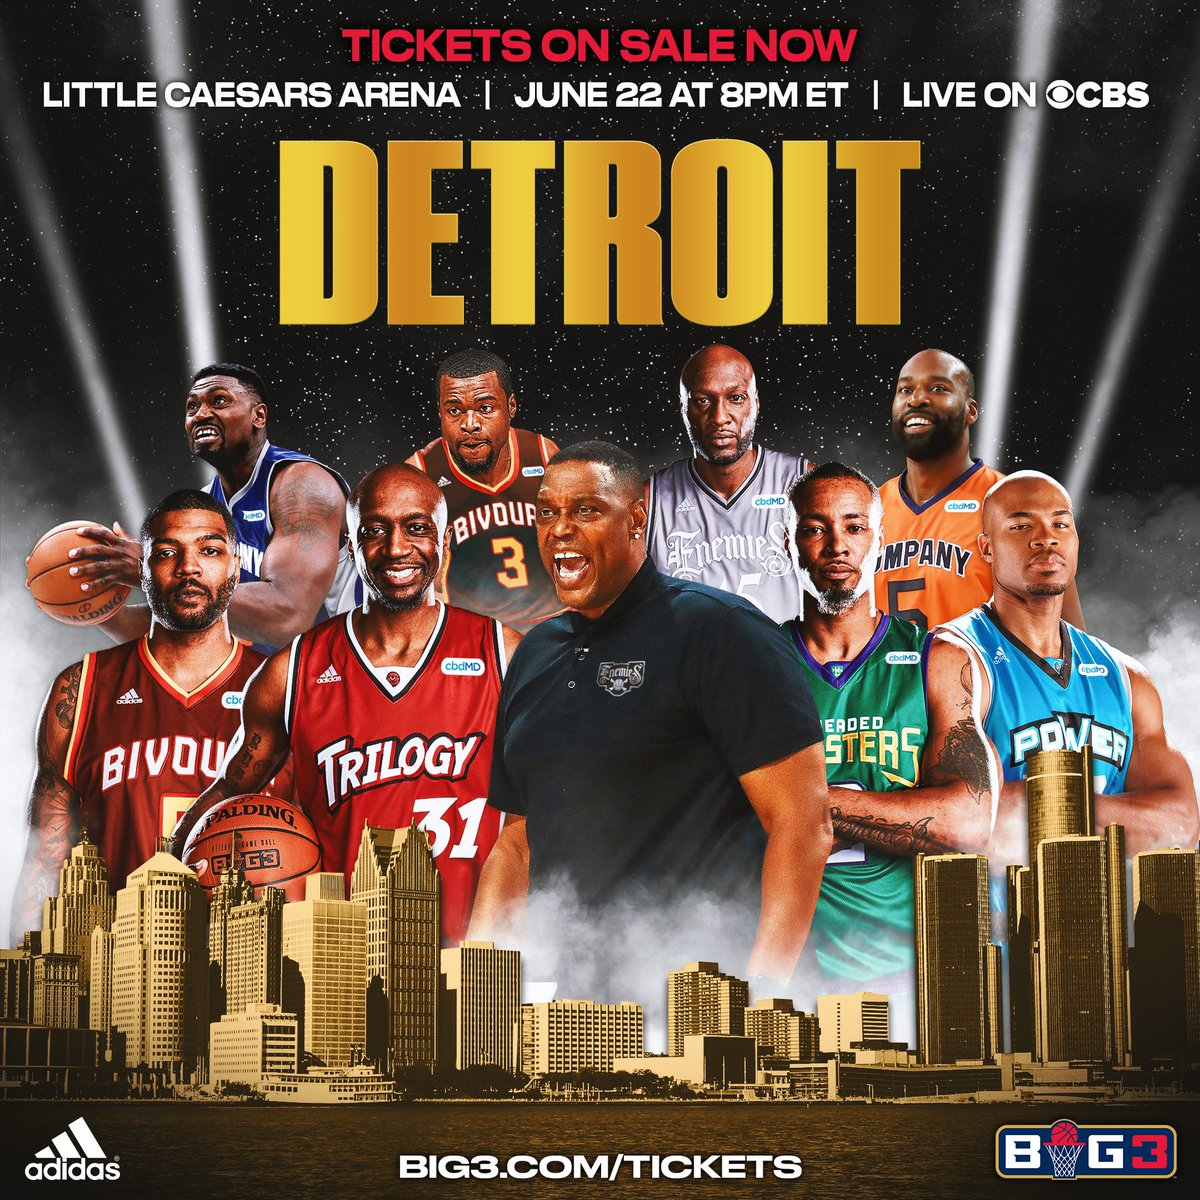 RT @ReggieEvans30: @thebig3 June 22 #Detroit ???????????? #TheGrindIsReal https://t.co/OuzbpIAtRP